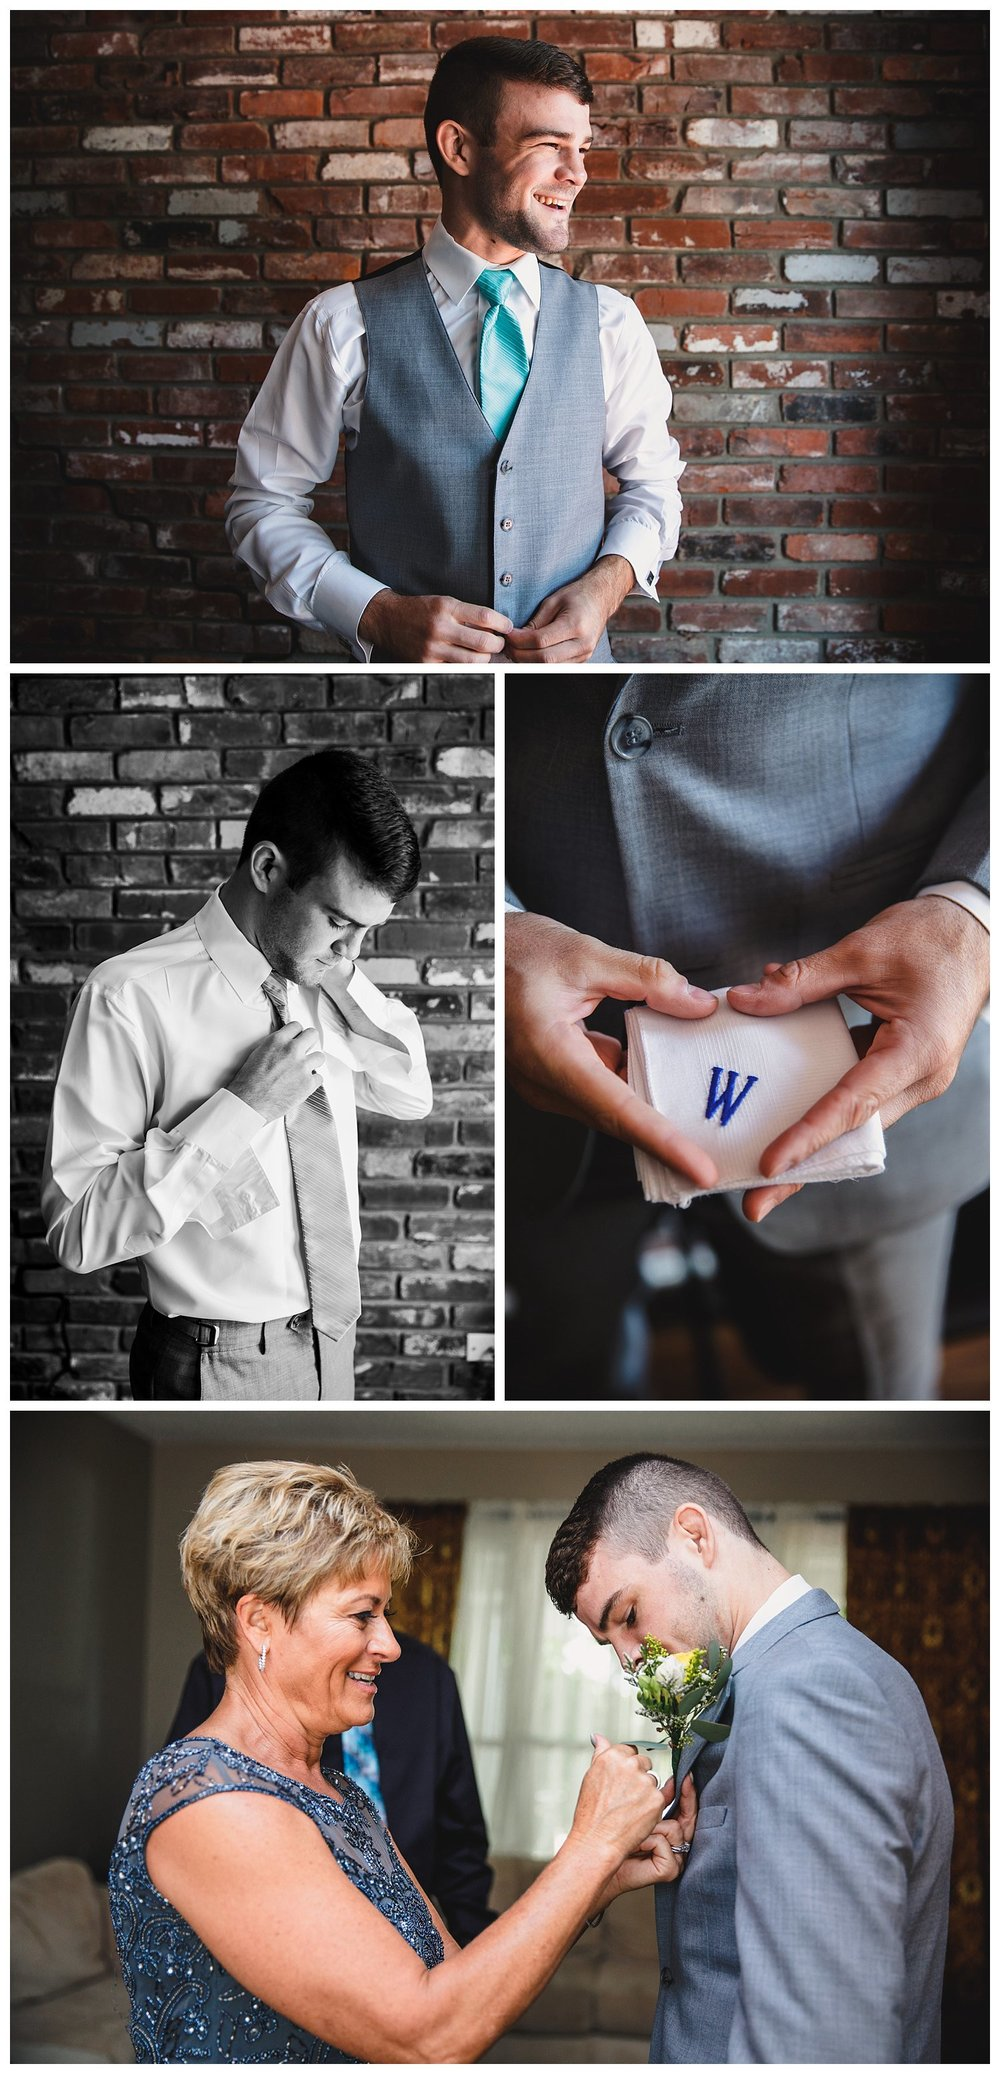 Kansas_City_Wedding_Photographer_Engagement_Kelsey_Diane_Photography_Midwest_Traveling_The_Legacy_At_Green_Hills_Summer_Wedding_0912.jpg